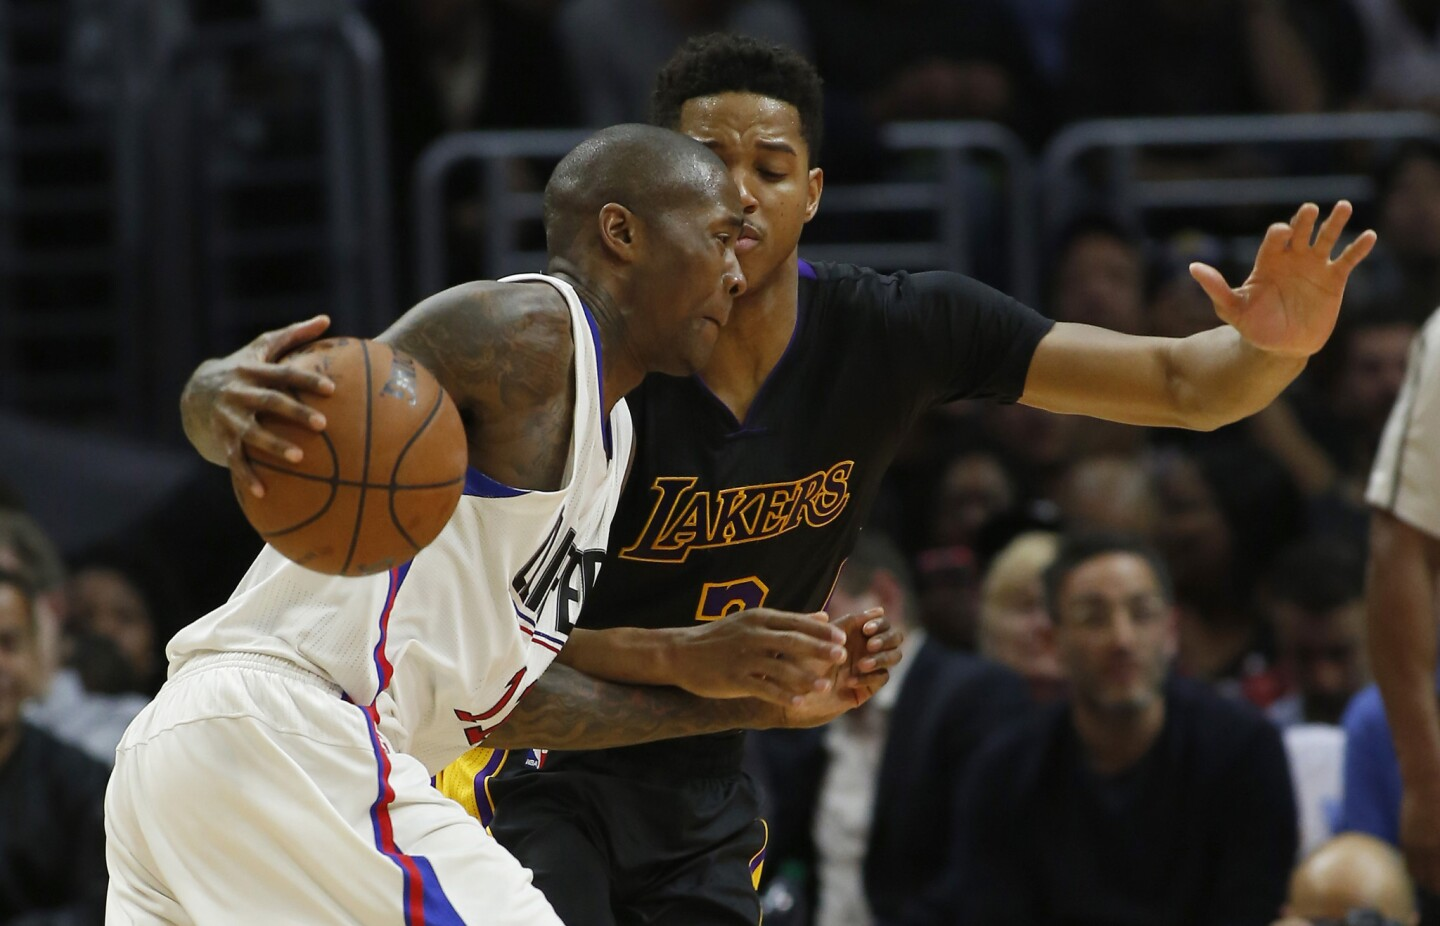 Clippers' Jamal Crawford, left, drives on Lakers' Anthony Brown, right, in fourth quarter on Friday.